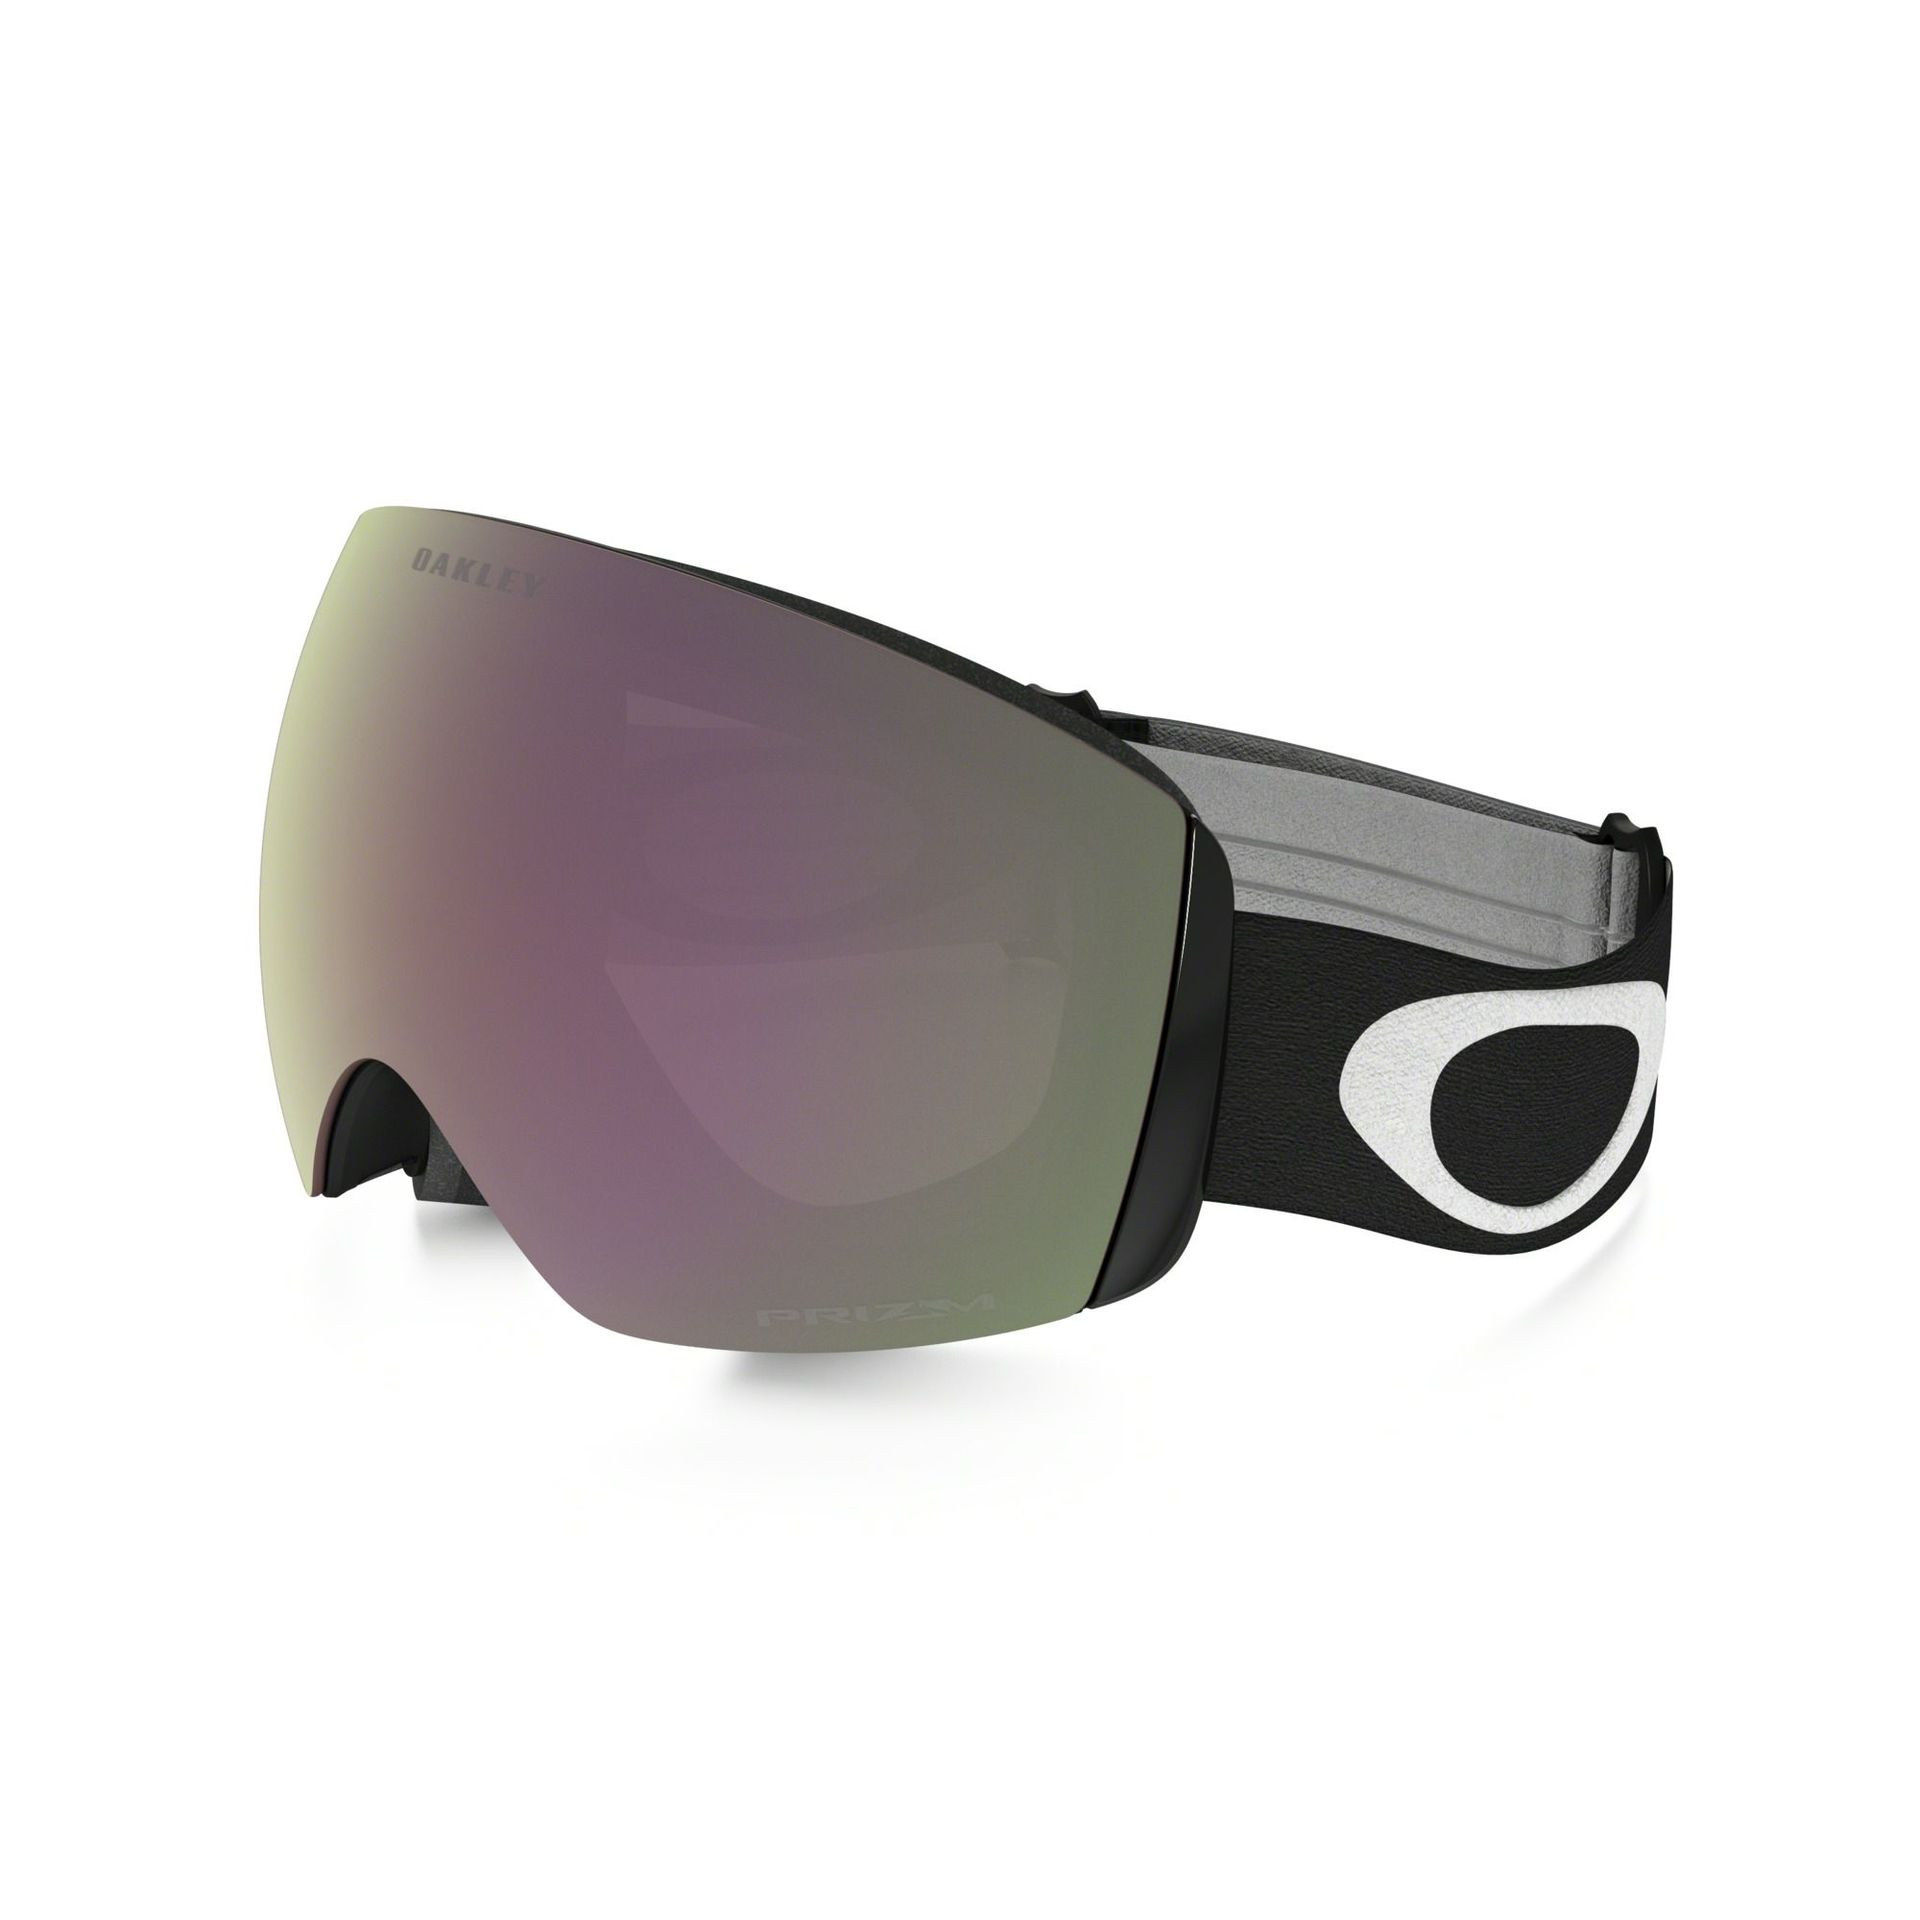 GOGLE OAKLEY FLIGHT DECK XM MATTE BLACK PRIZM HI PINK IRIDIUM